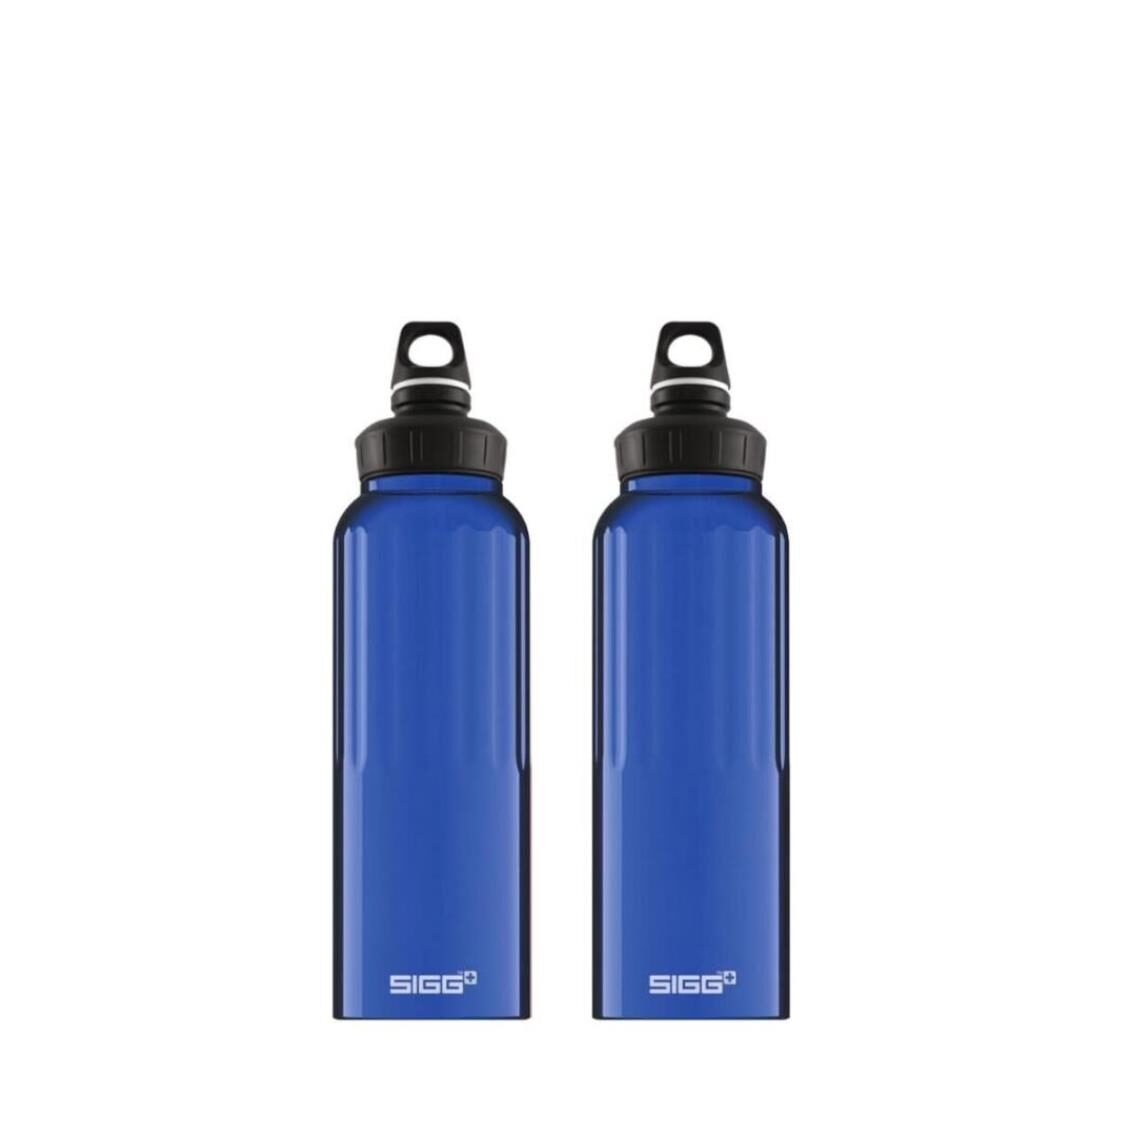 Sigg 2-pc Set 15L Traveller Wide Mouth Water Bottle - Blue 852610 x 2